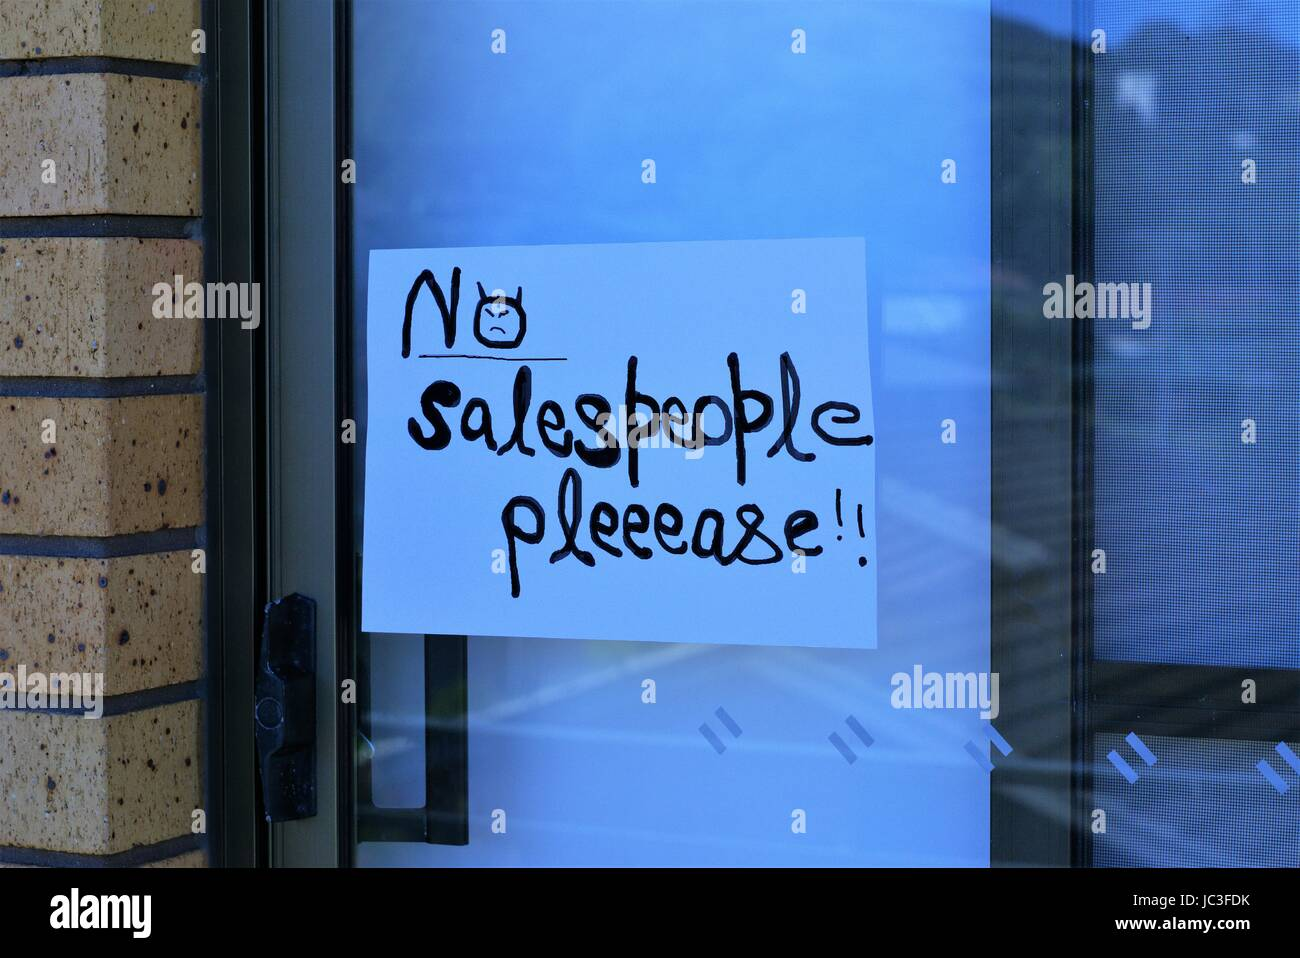 Sign saying 'No Salespeople please' - Stock Image